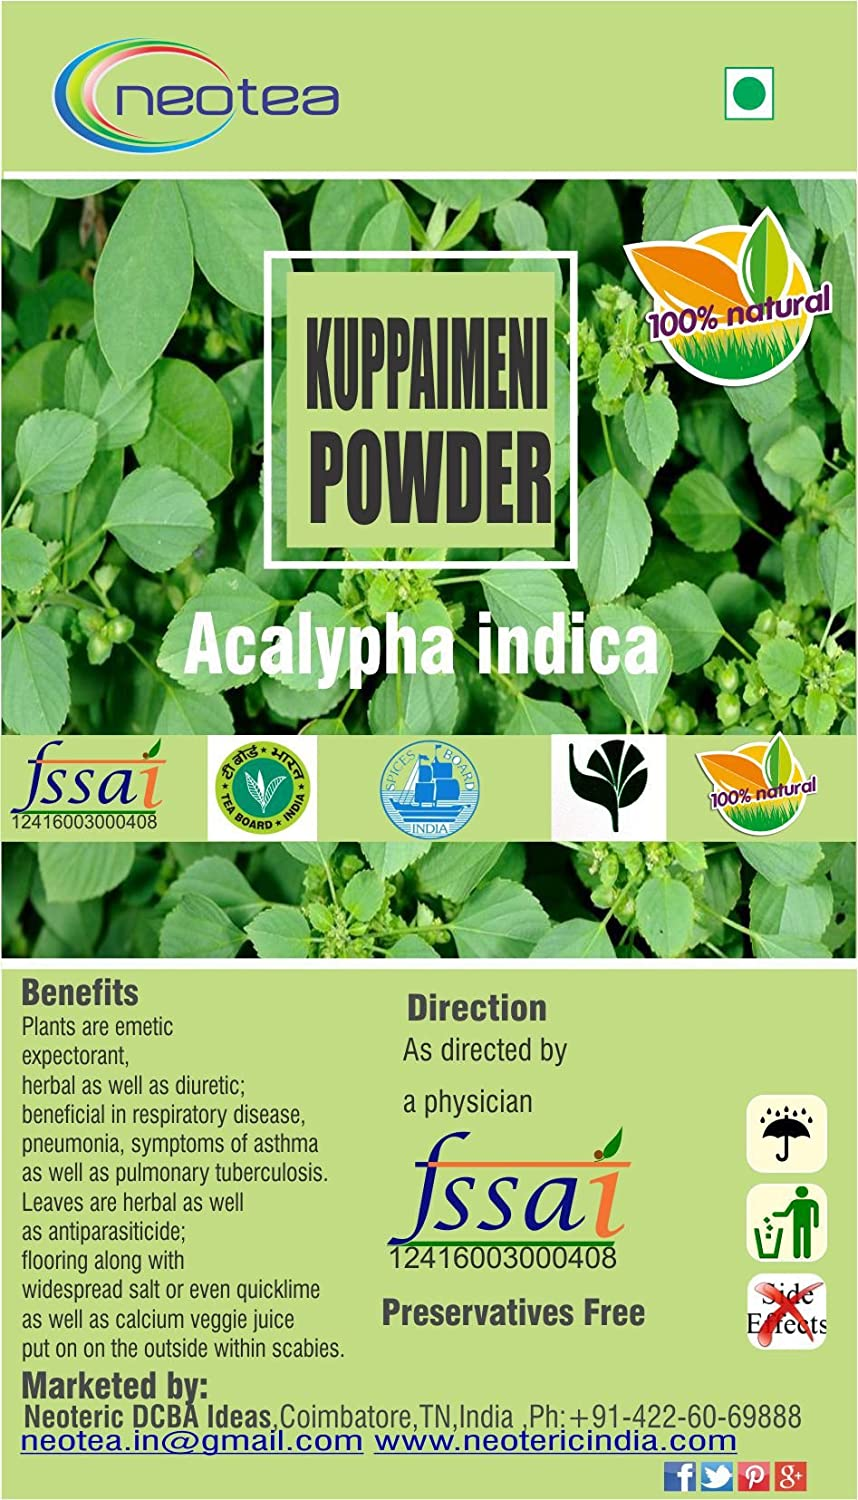 Buy Neotea Kuppaimeni Powder Acalypha Indica 300g Online At Low